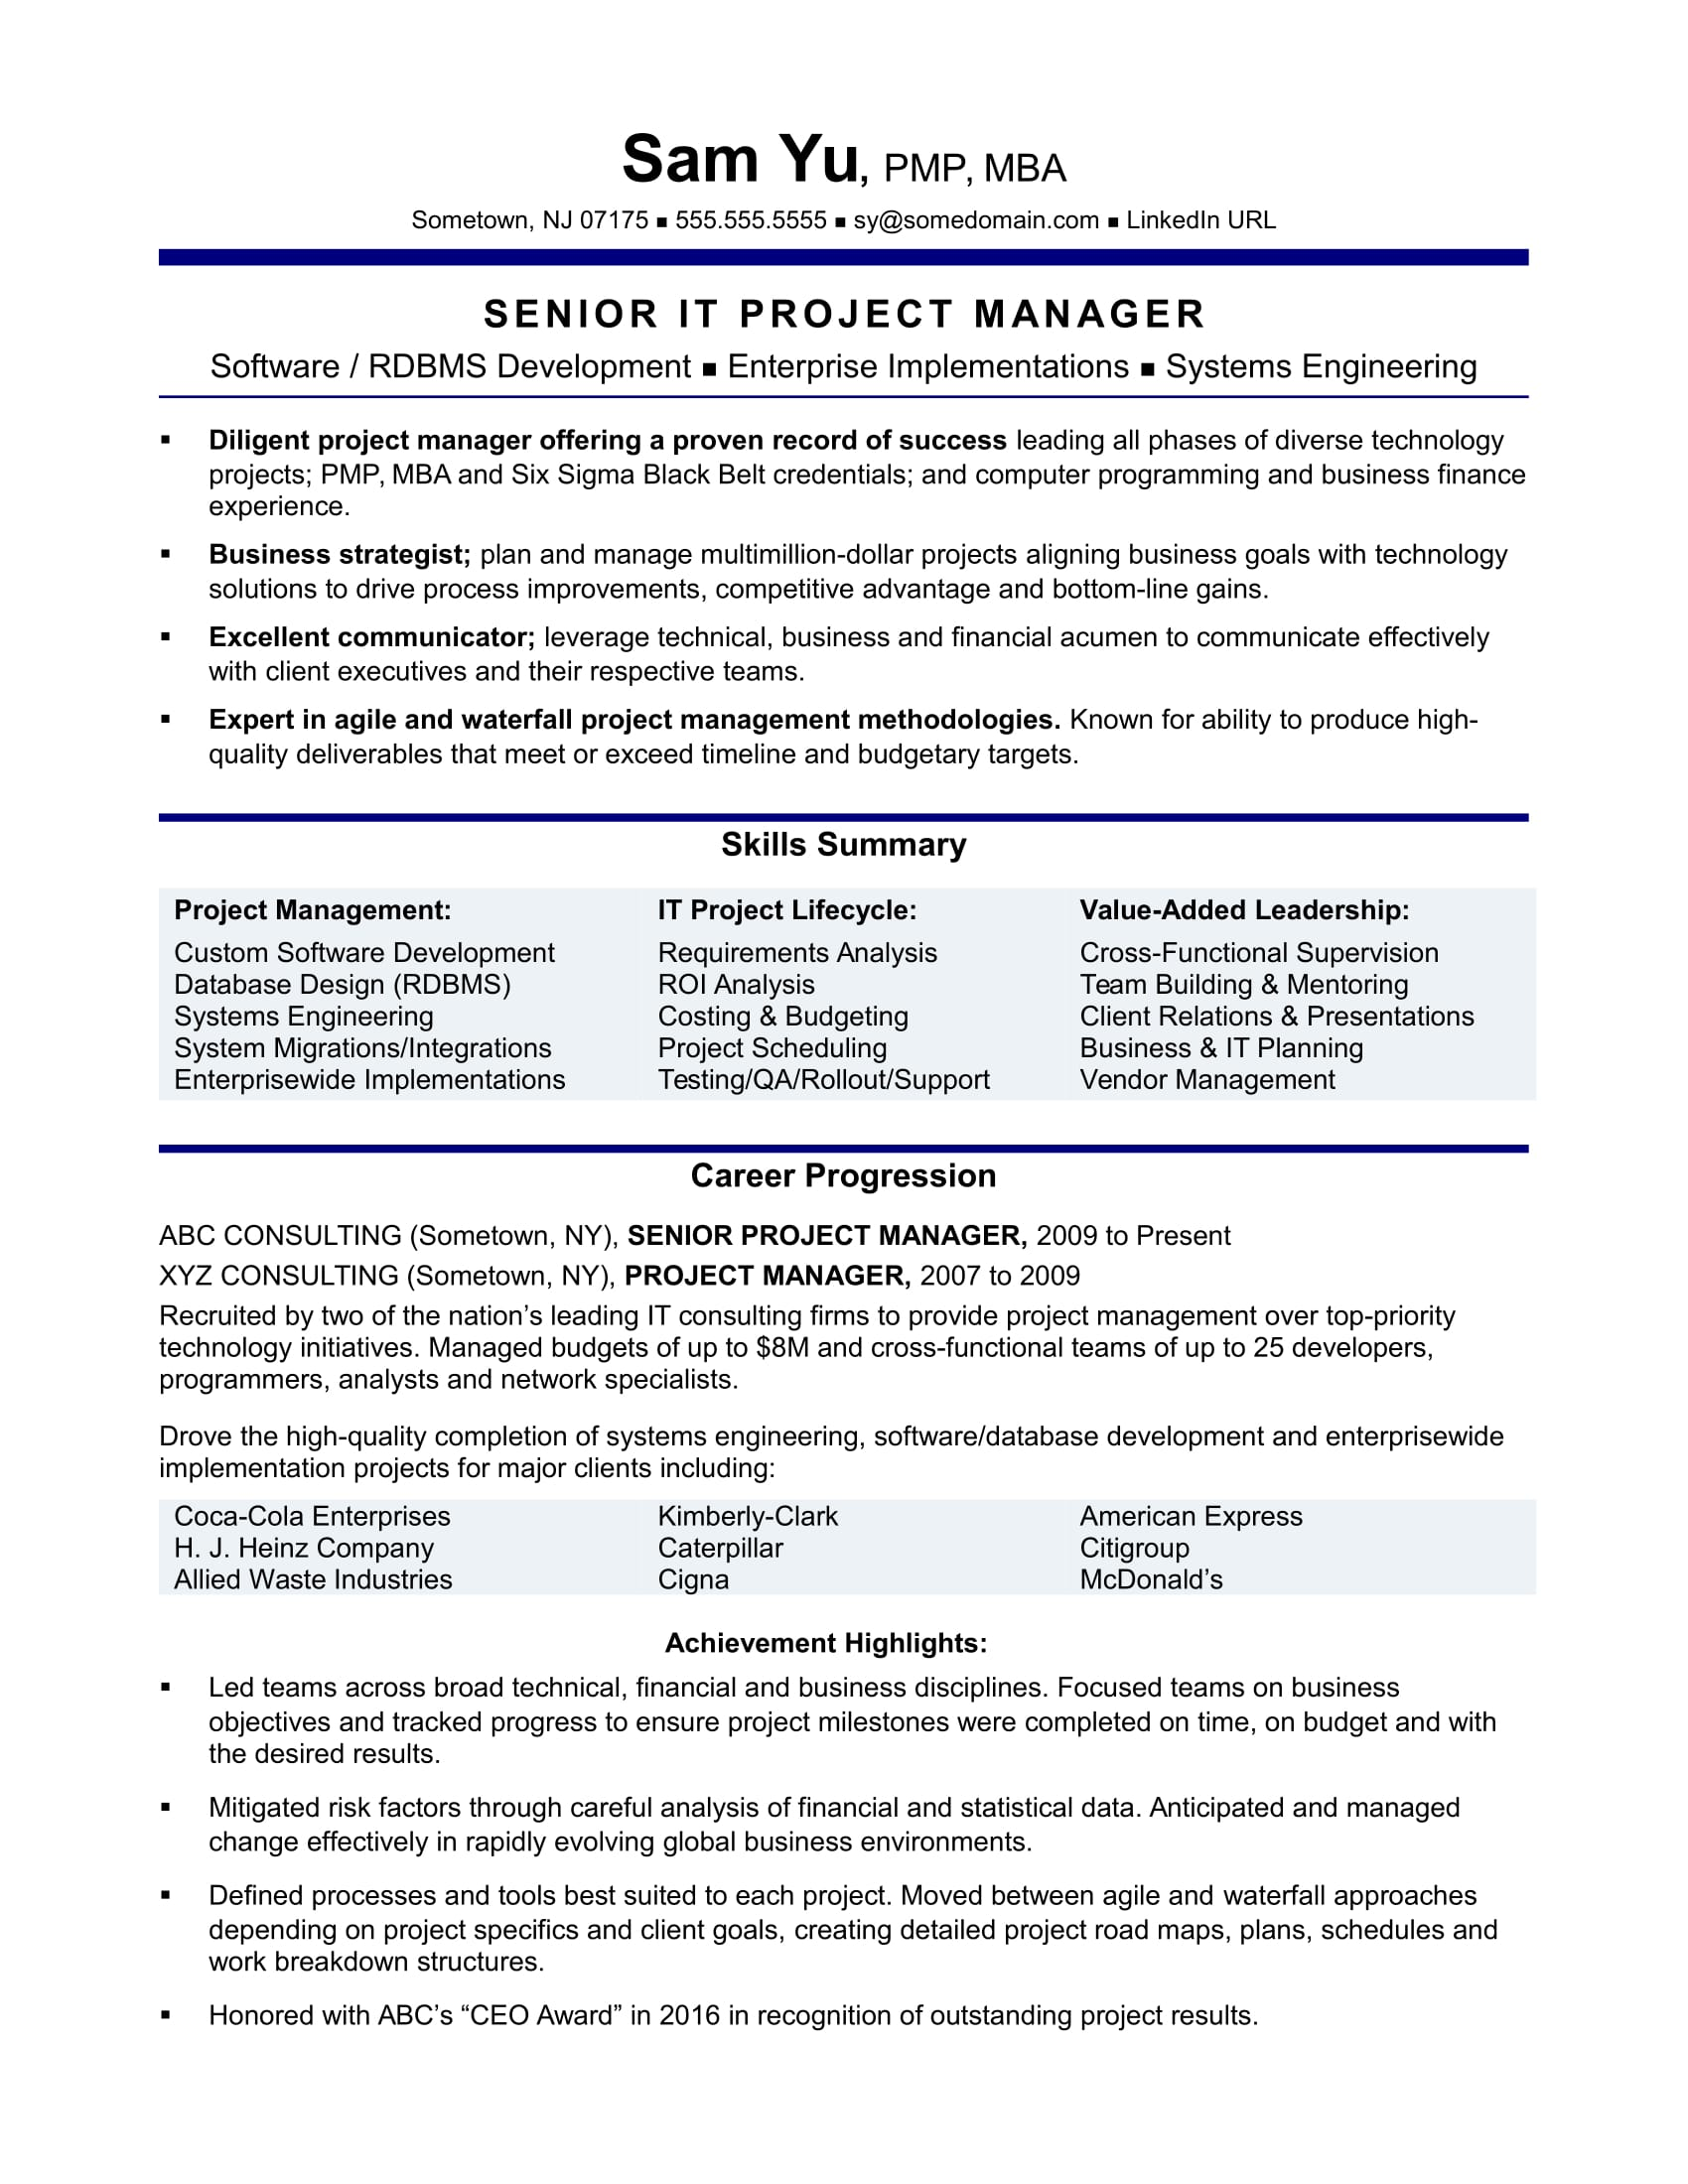 Experienced IT Project Manager Resume Sample | Monster com